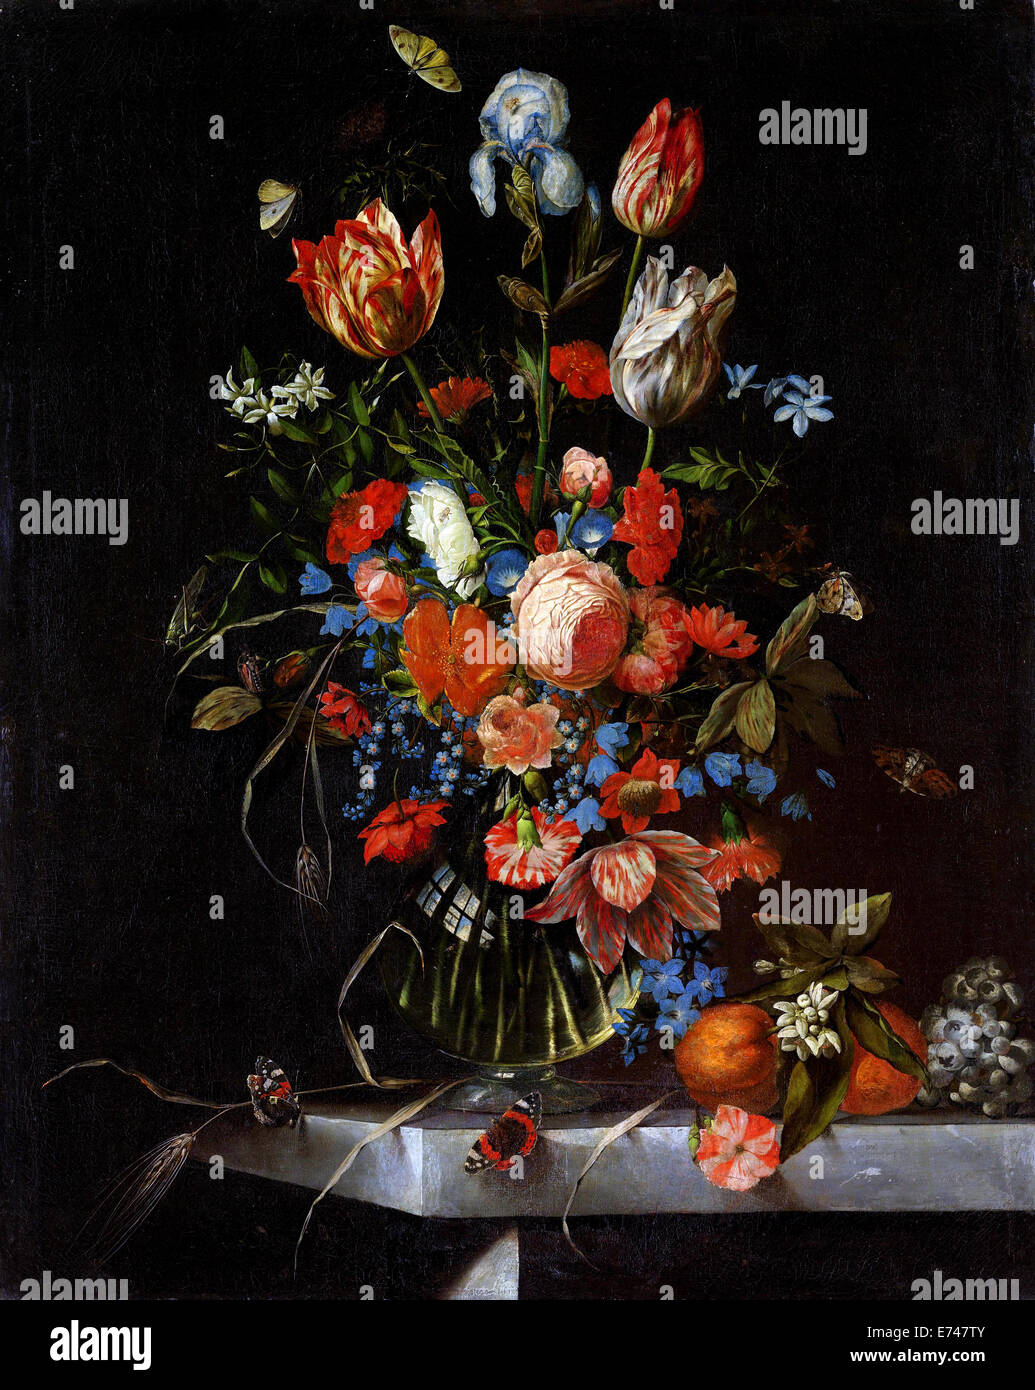 Still Life with Flowers - by Ottmar Elliger, 1673 - Stock Image